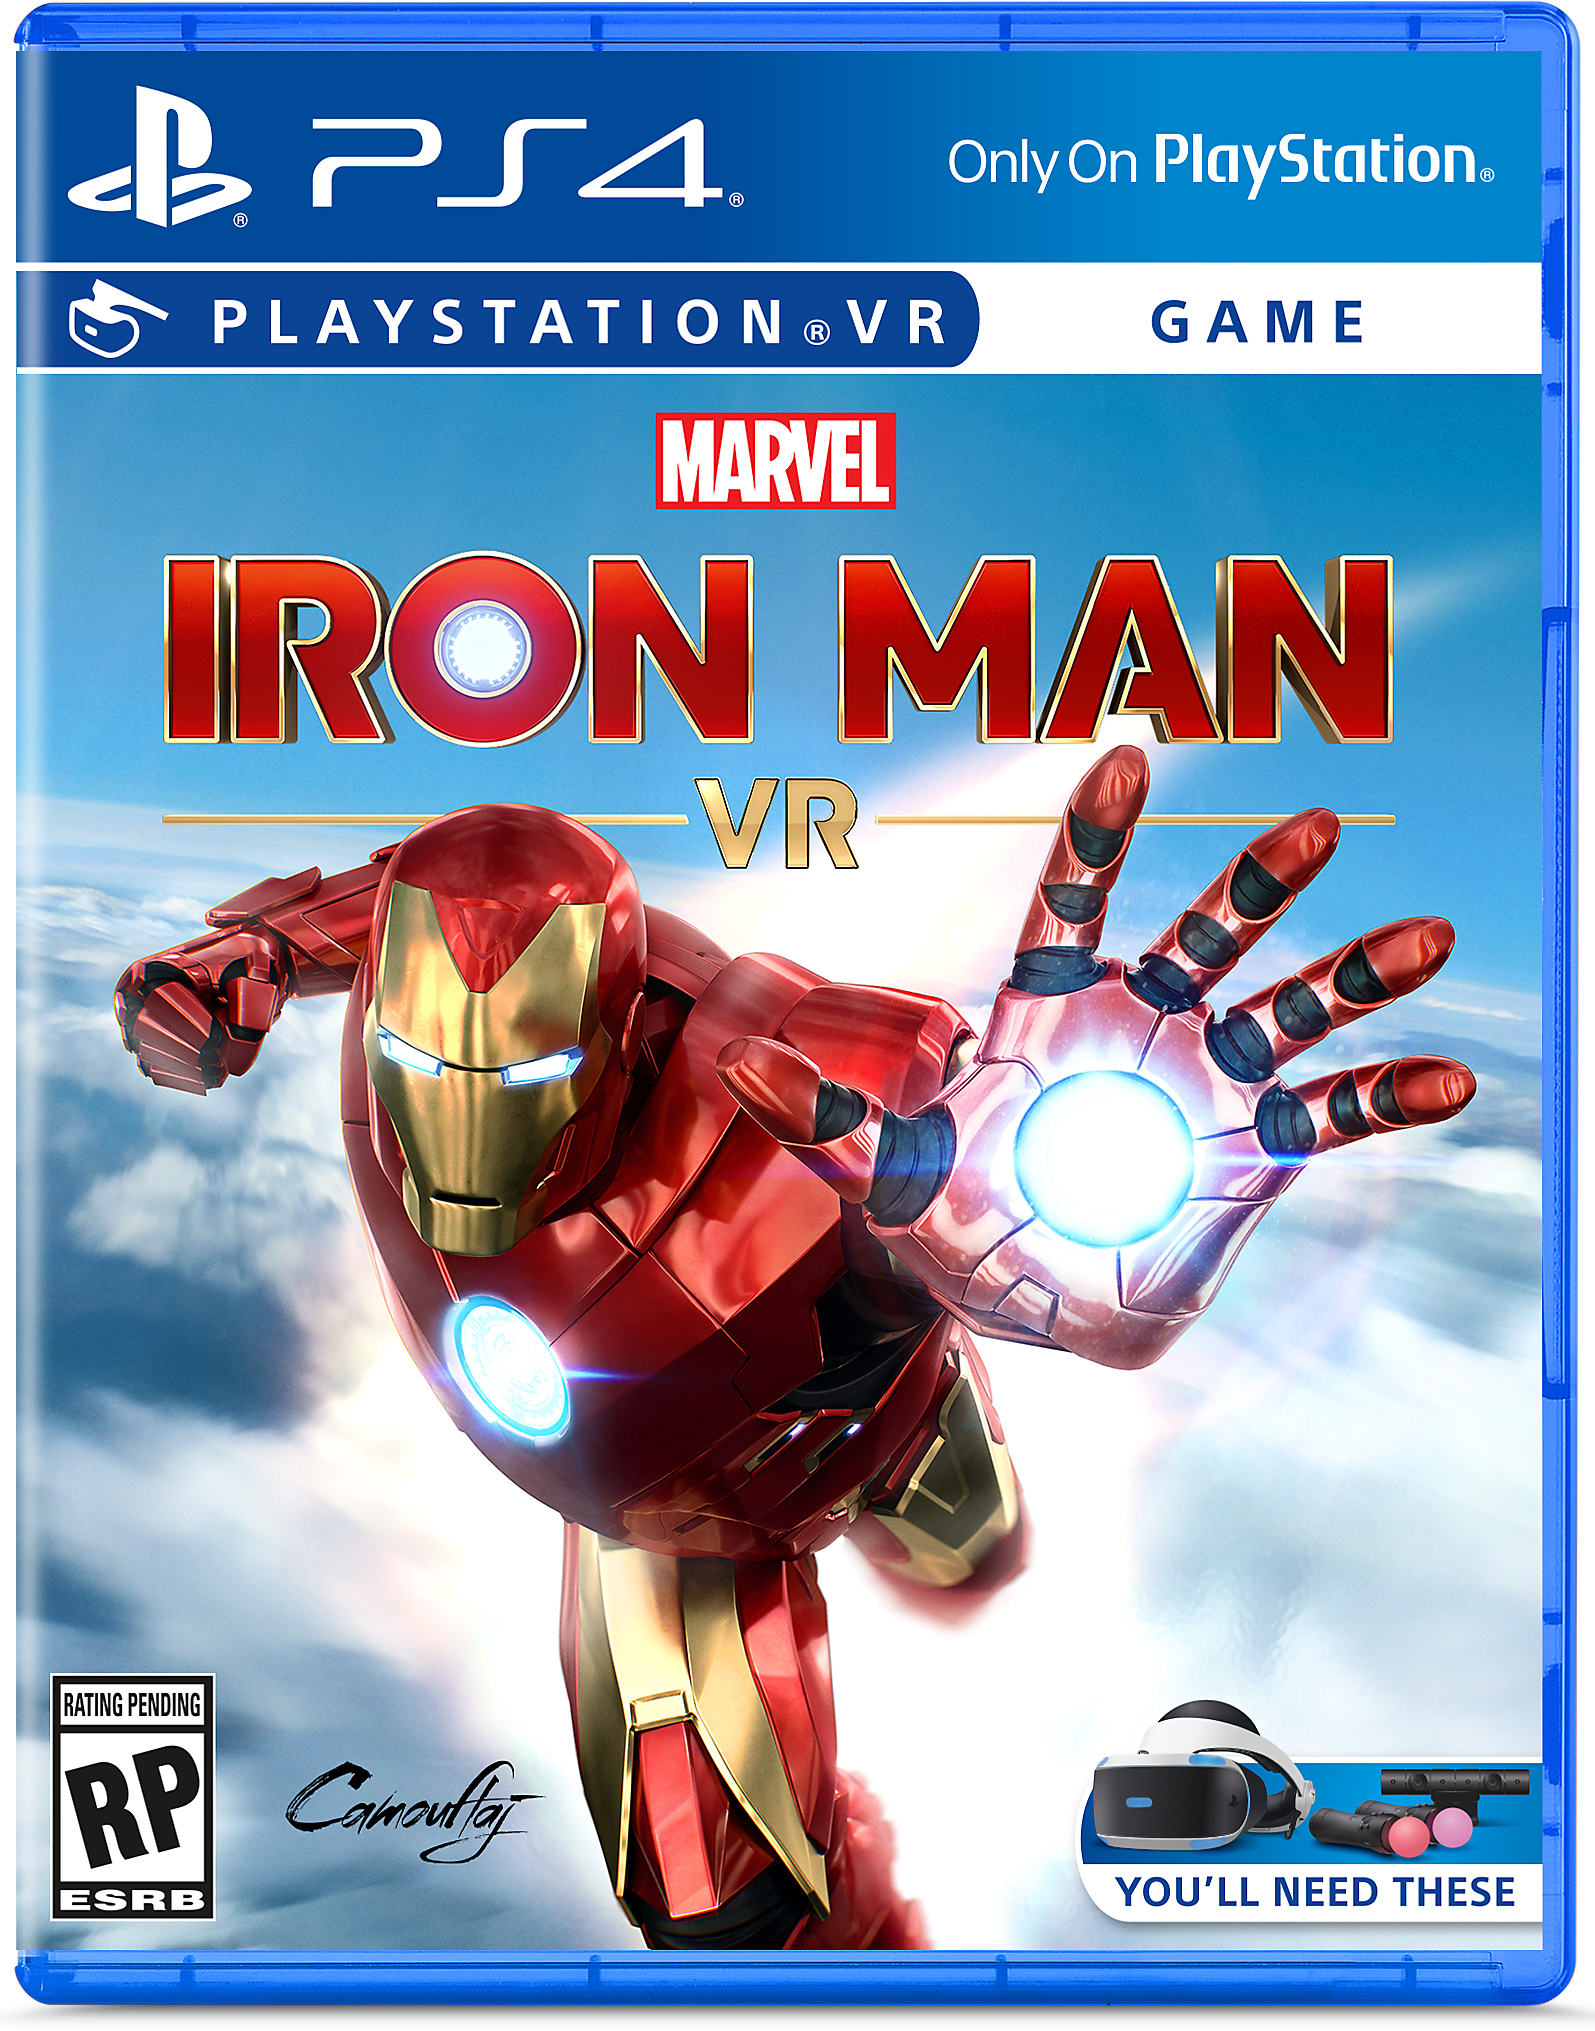 Iron Man VR - PS4 Box Art